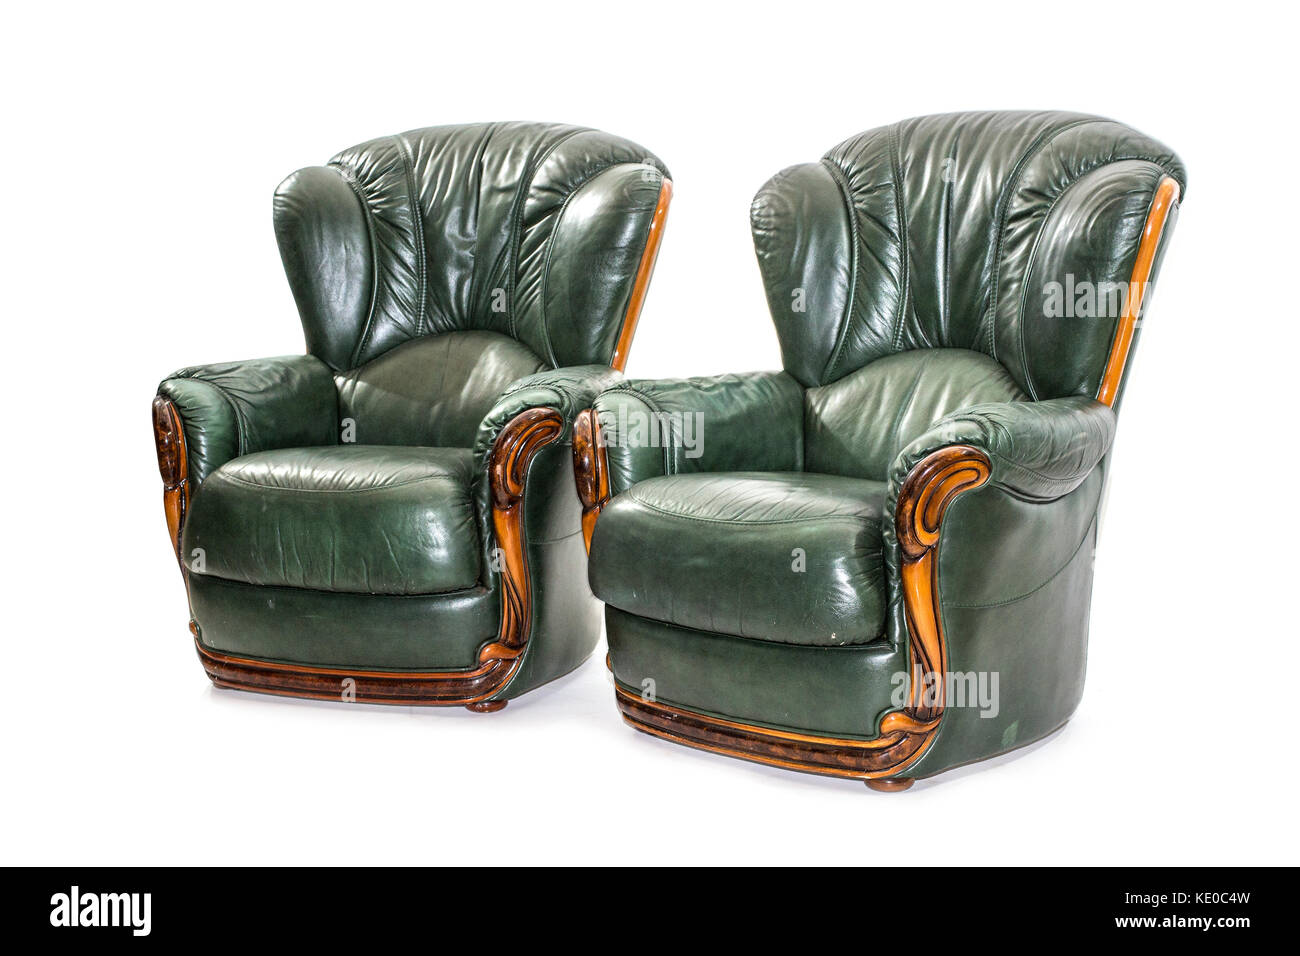 elegant brown leather arm chair on the white background. - Stock Image